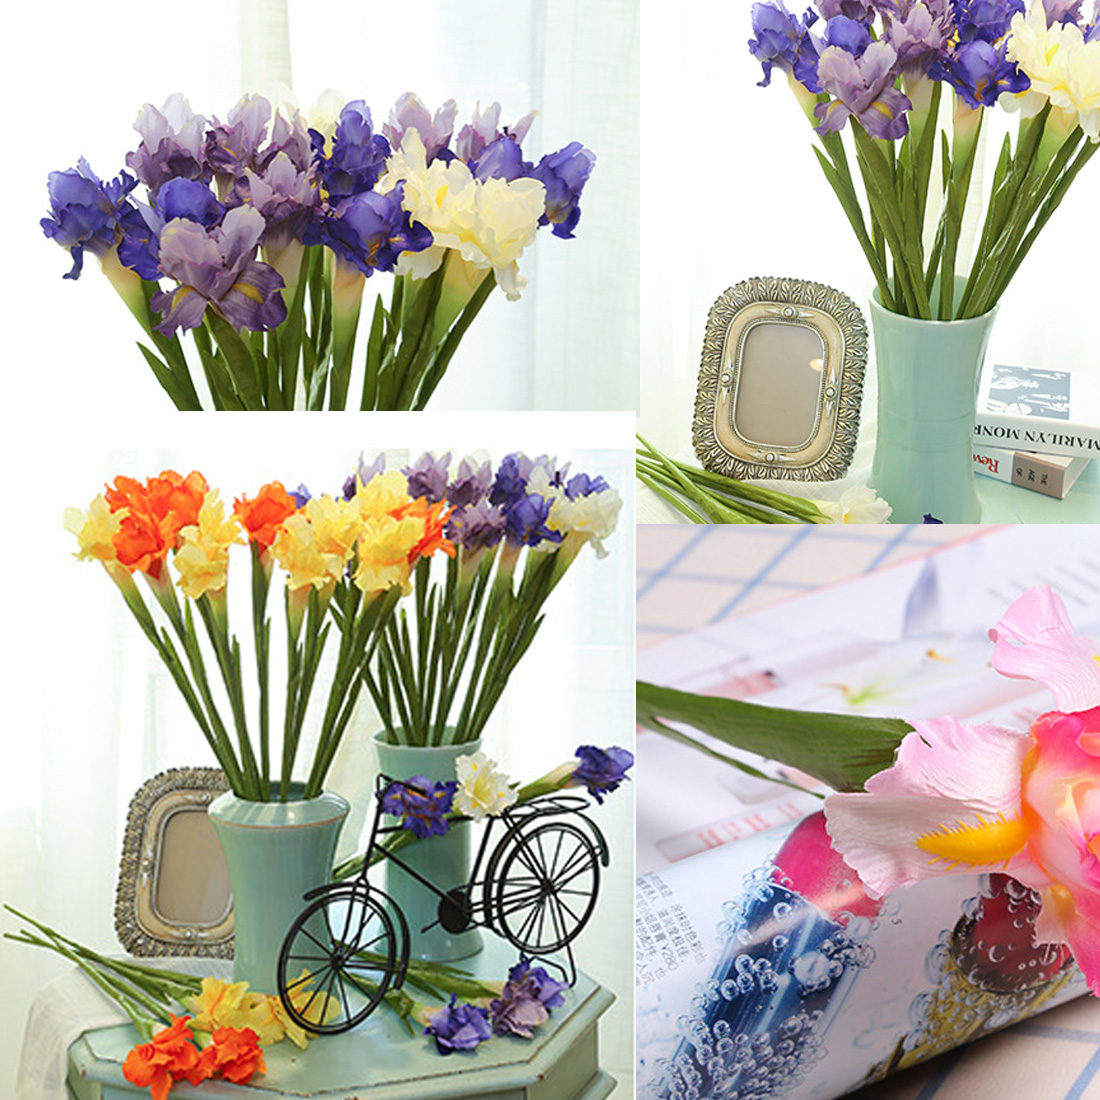 Artificial flower irish iris flower branch for spring wedding decor artificial flower irish iris flower branch for spring wedding decor party home table decoration flores fake irish flowers in artificial dried flowers from izmirmasajfo